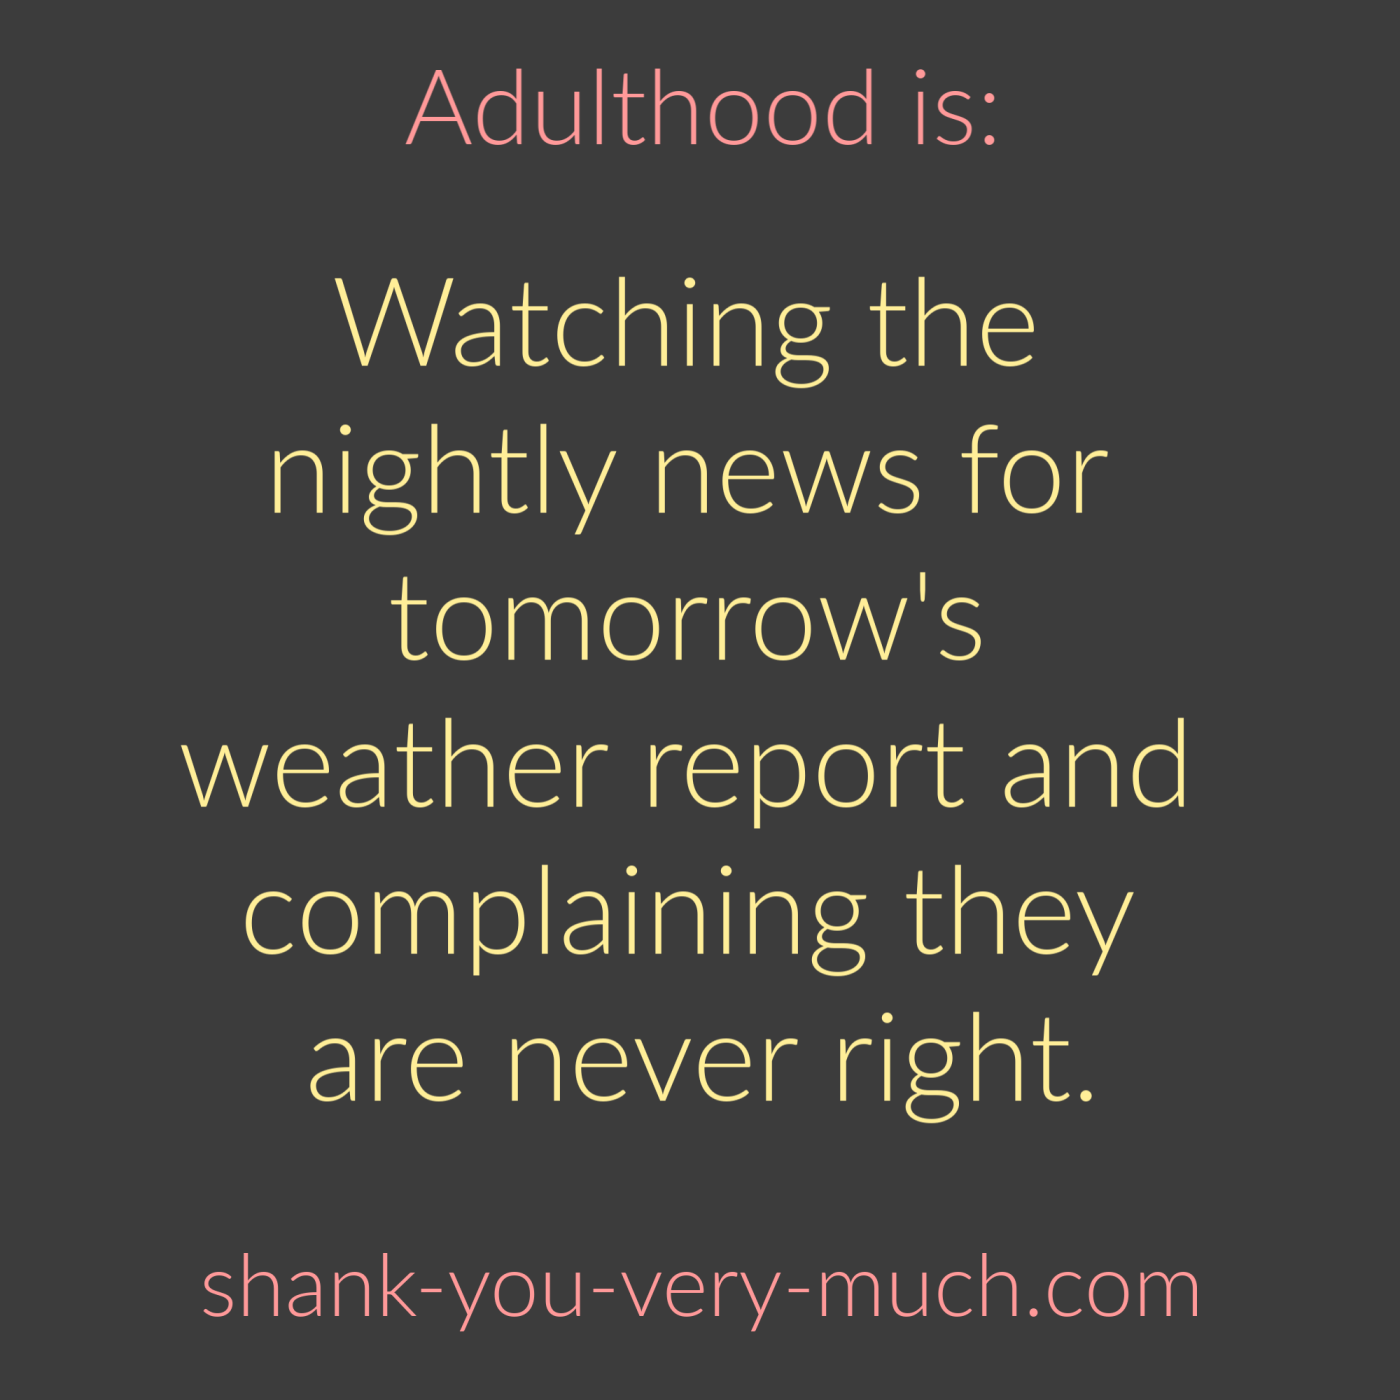 Adulthood Is - Watching the nightly news for tomorrow's weather report and complaining they are never right.